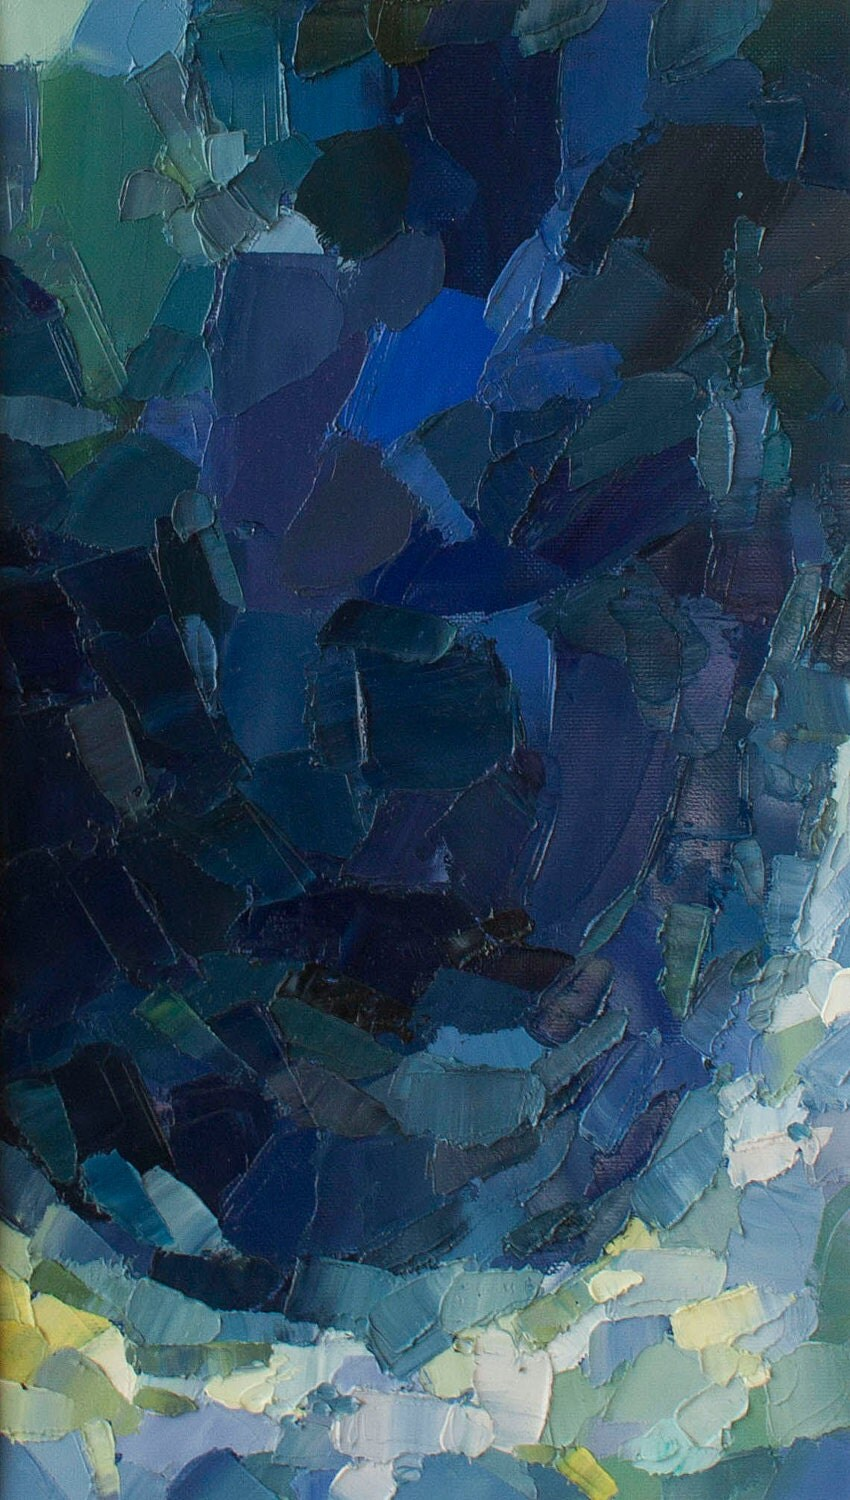 Nocturne: Ocean - Original Oil Painting in deep blues and foamy light blues and greens (37.5x21.5 cm - app. 14.8x8.5 in) - KoseBose